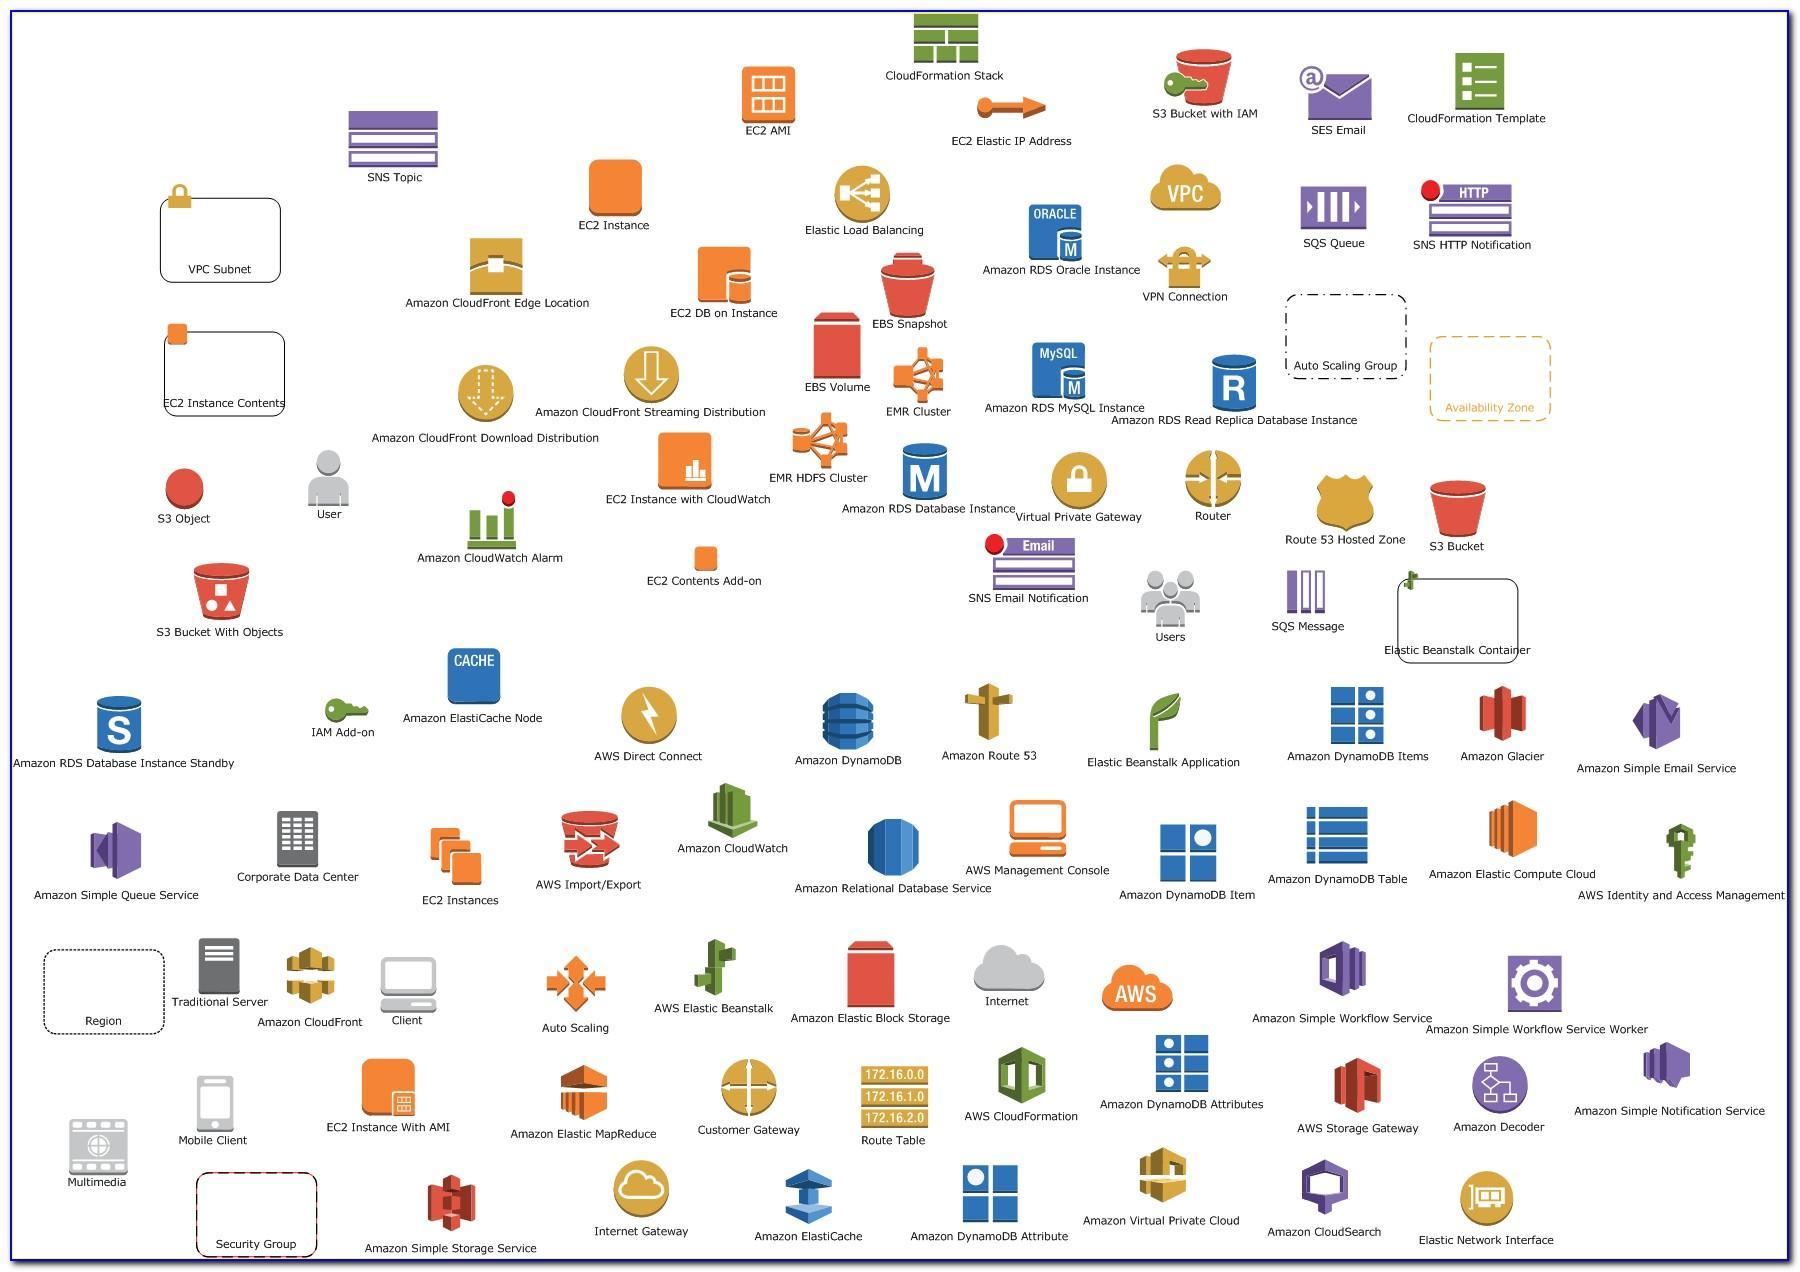 Visio Stencil Network Diagram